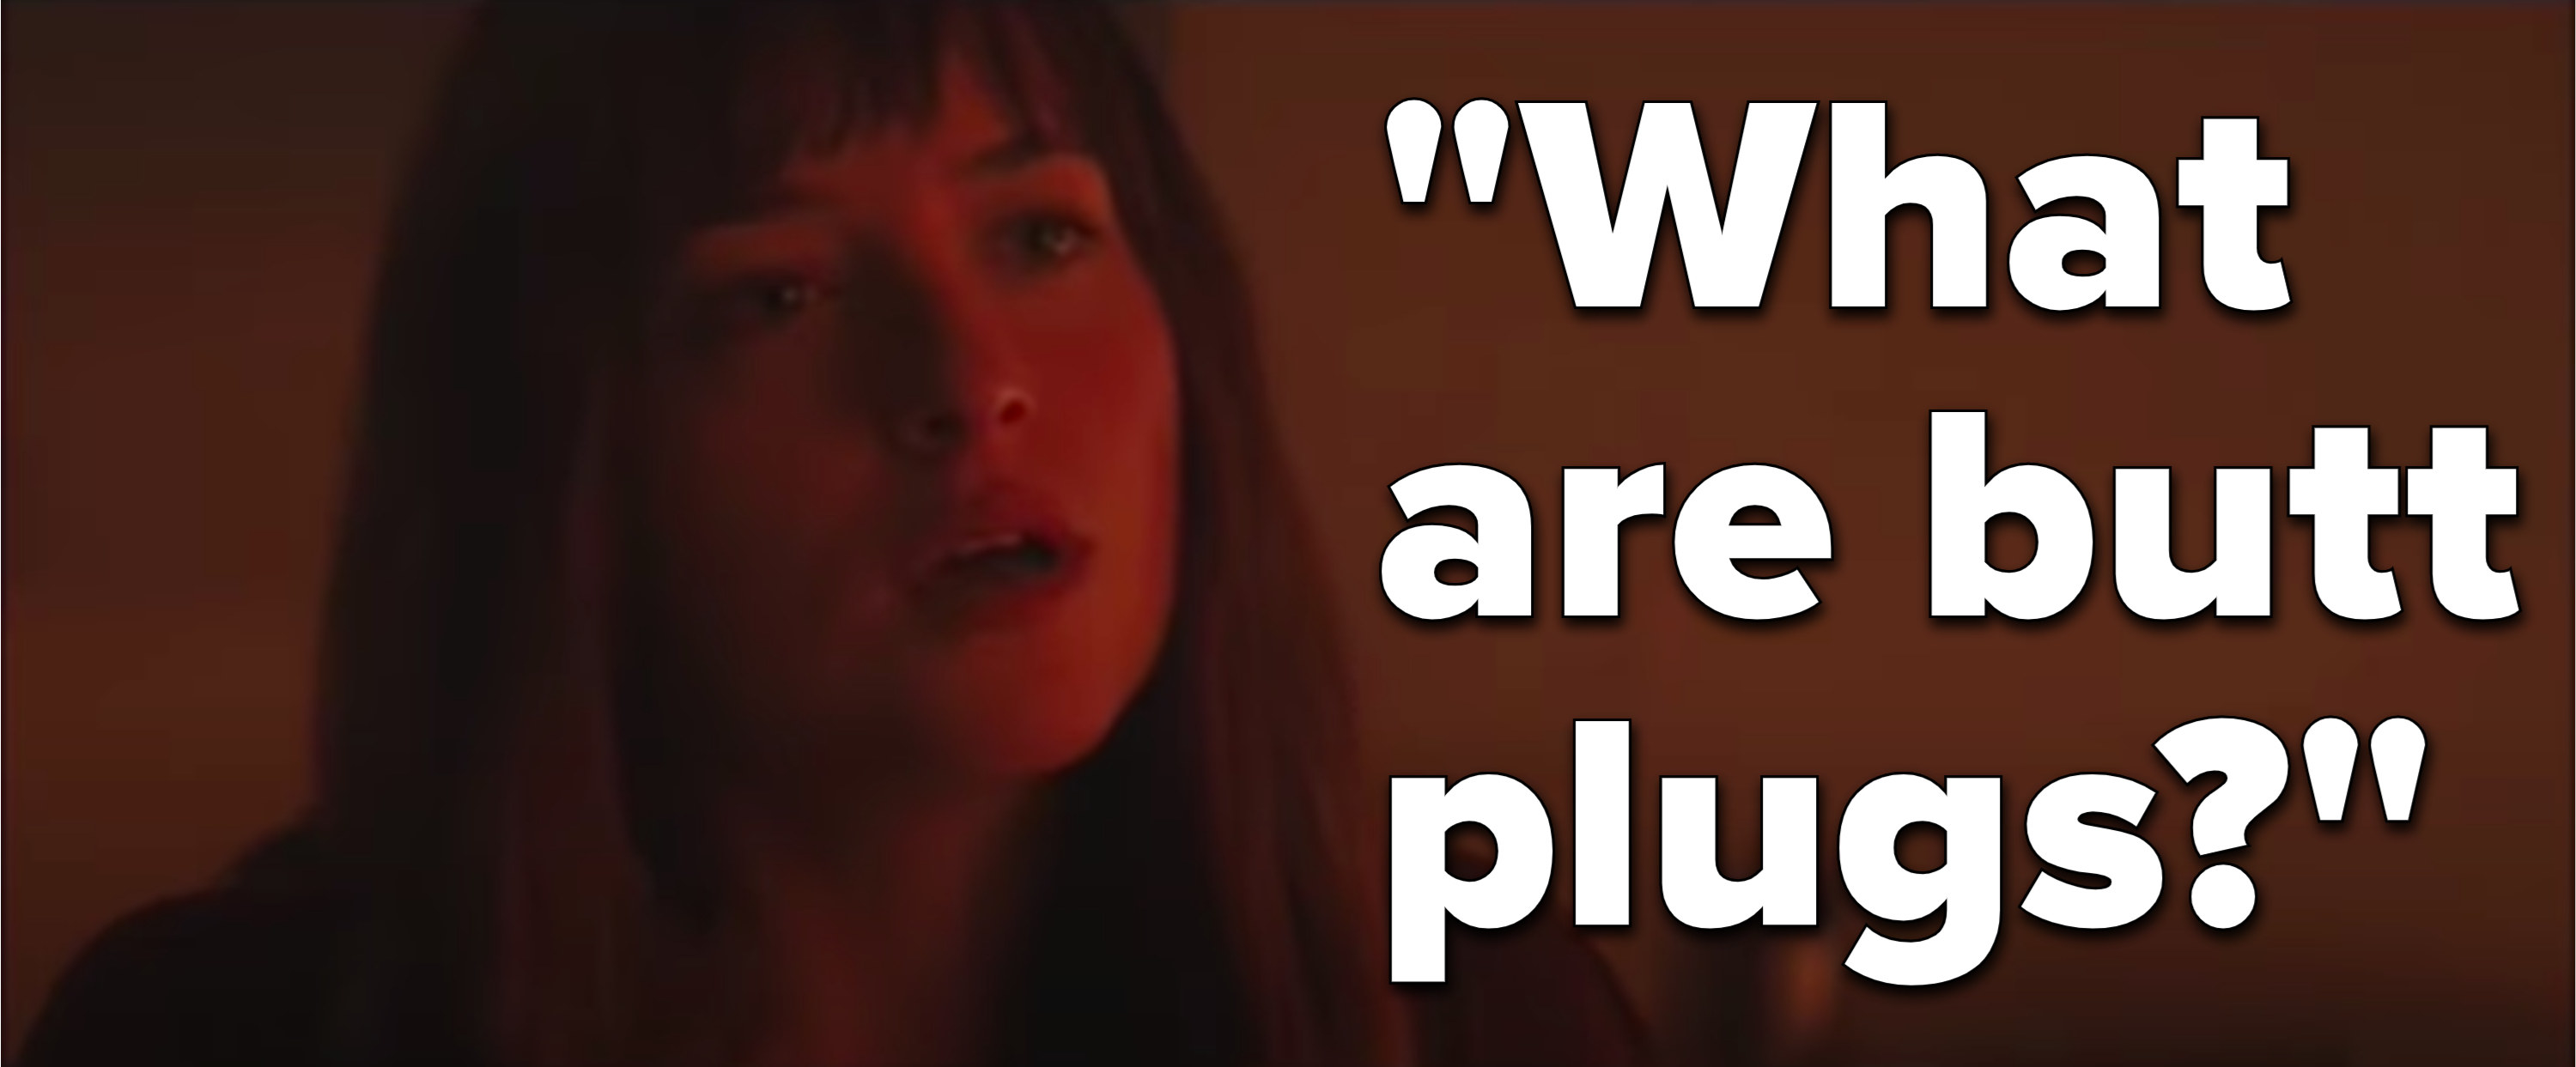 """Anastasia Steele, from Fifty Shades of Grey, asks, """"what are butt plugs"""""""